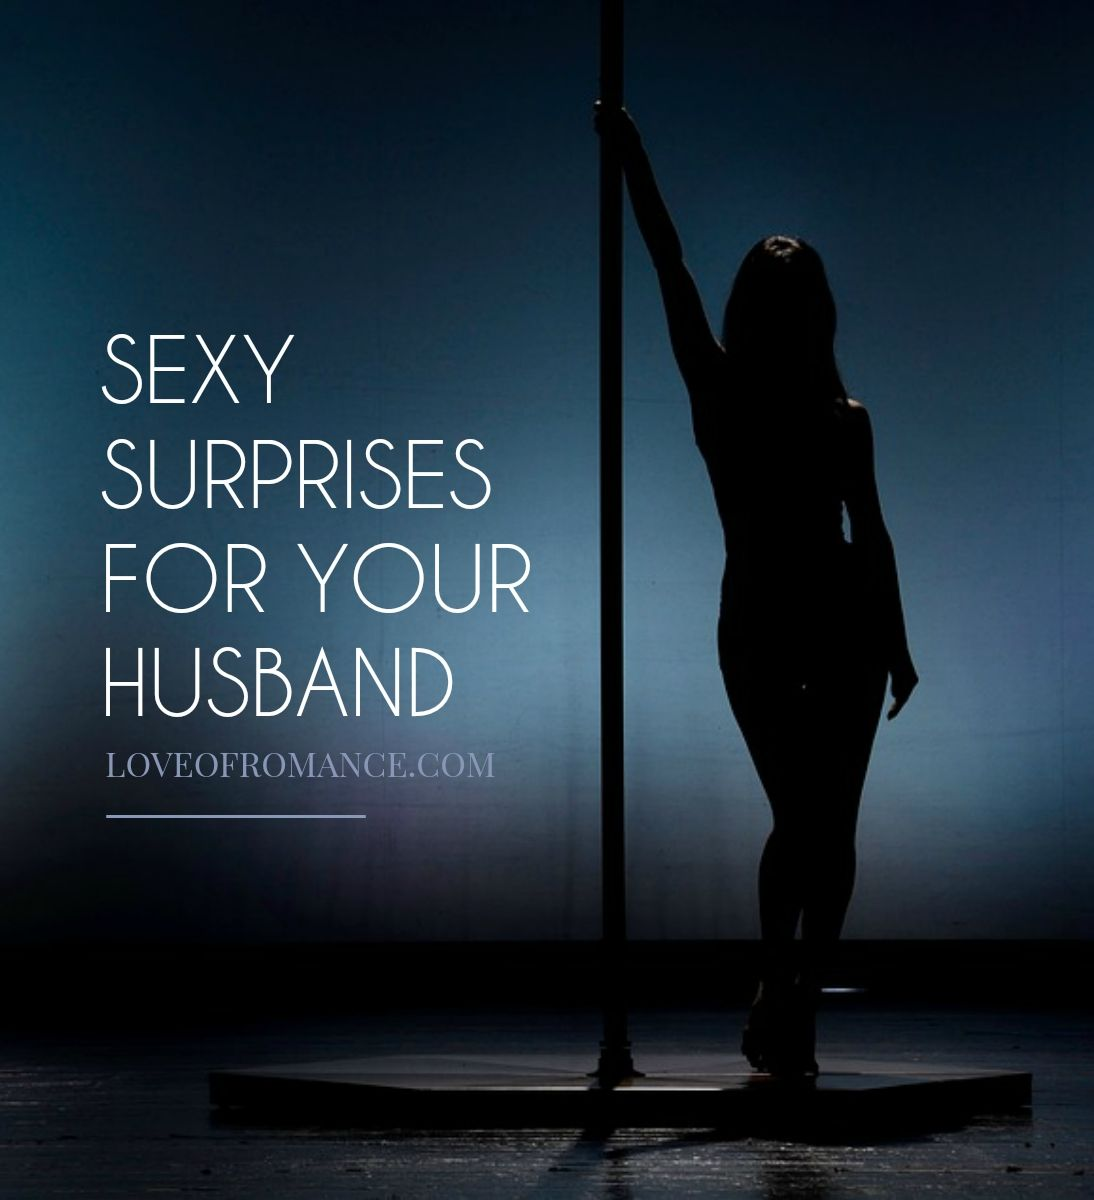 Sexy surprises for your man